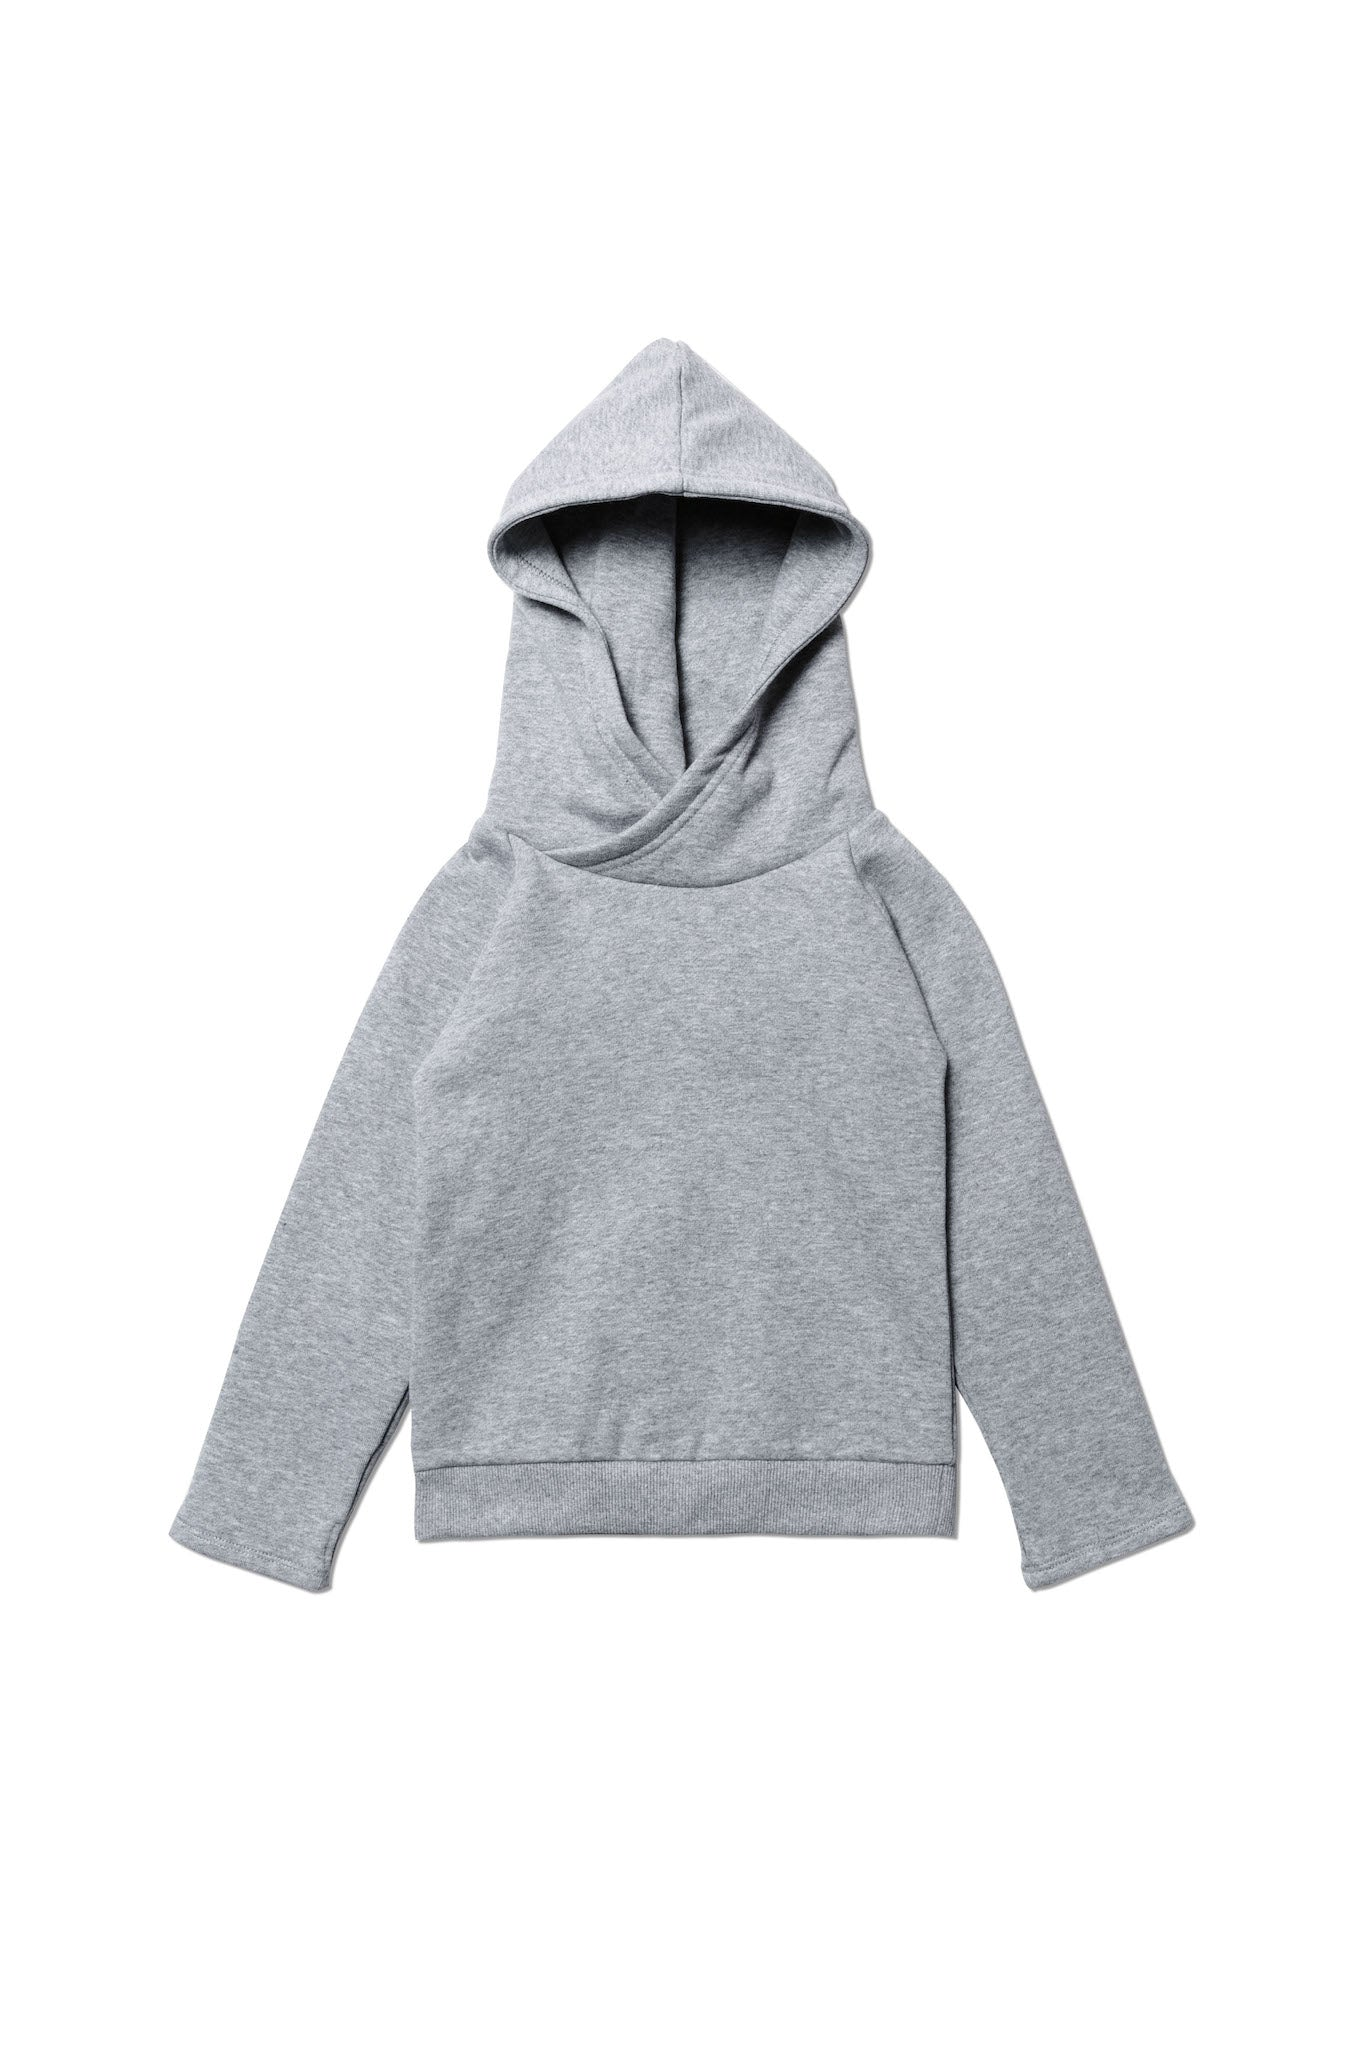 Trey Brushed Hoodie - Spicy Lil Tofu